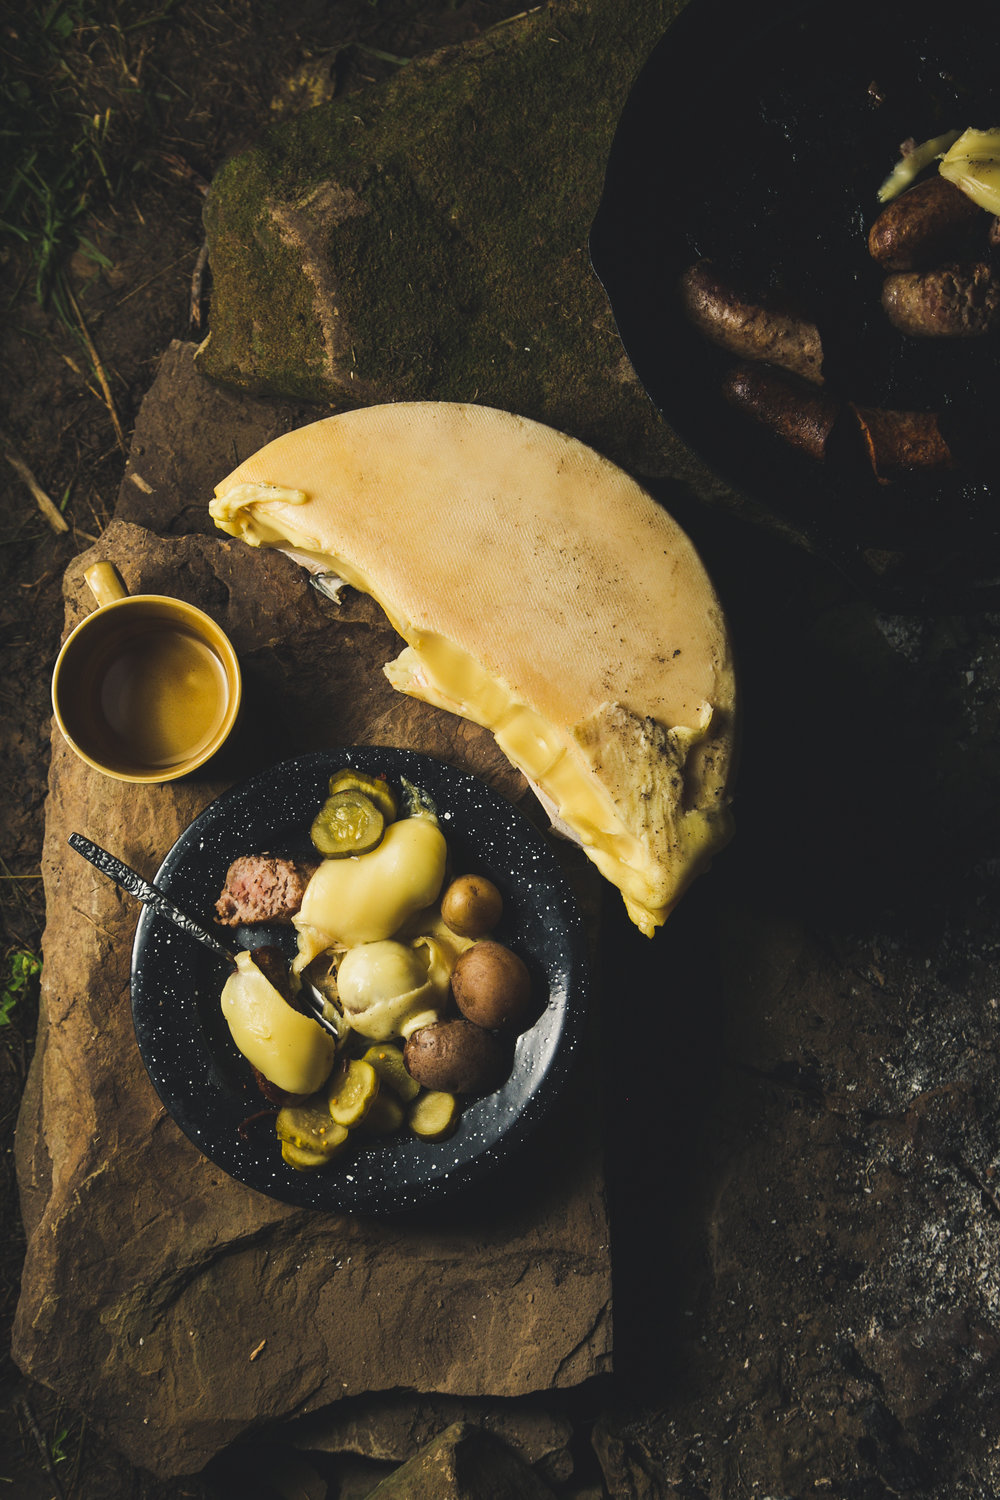 Raclette by the campfire - styling and photography for Emmi USA